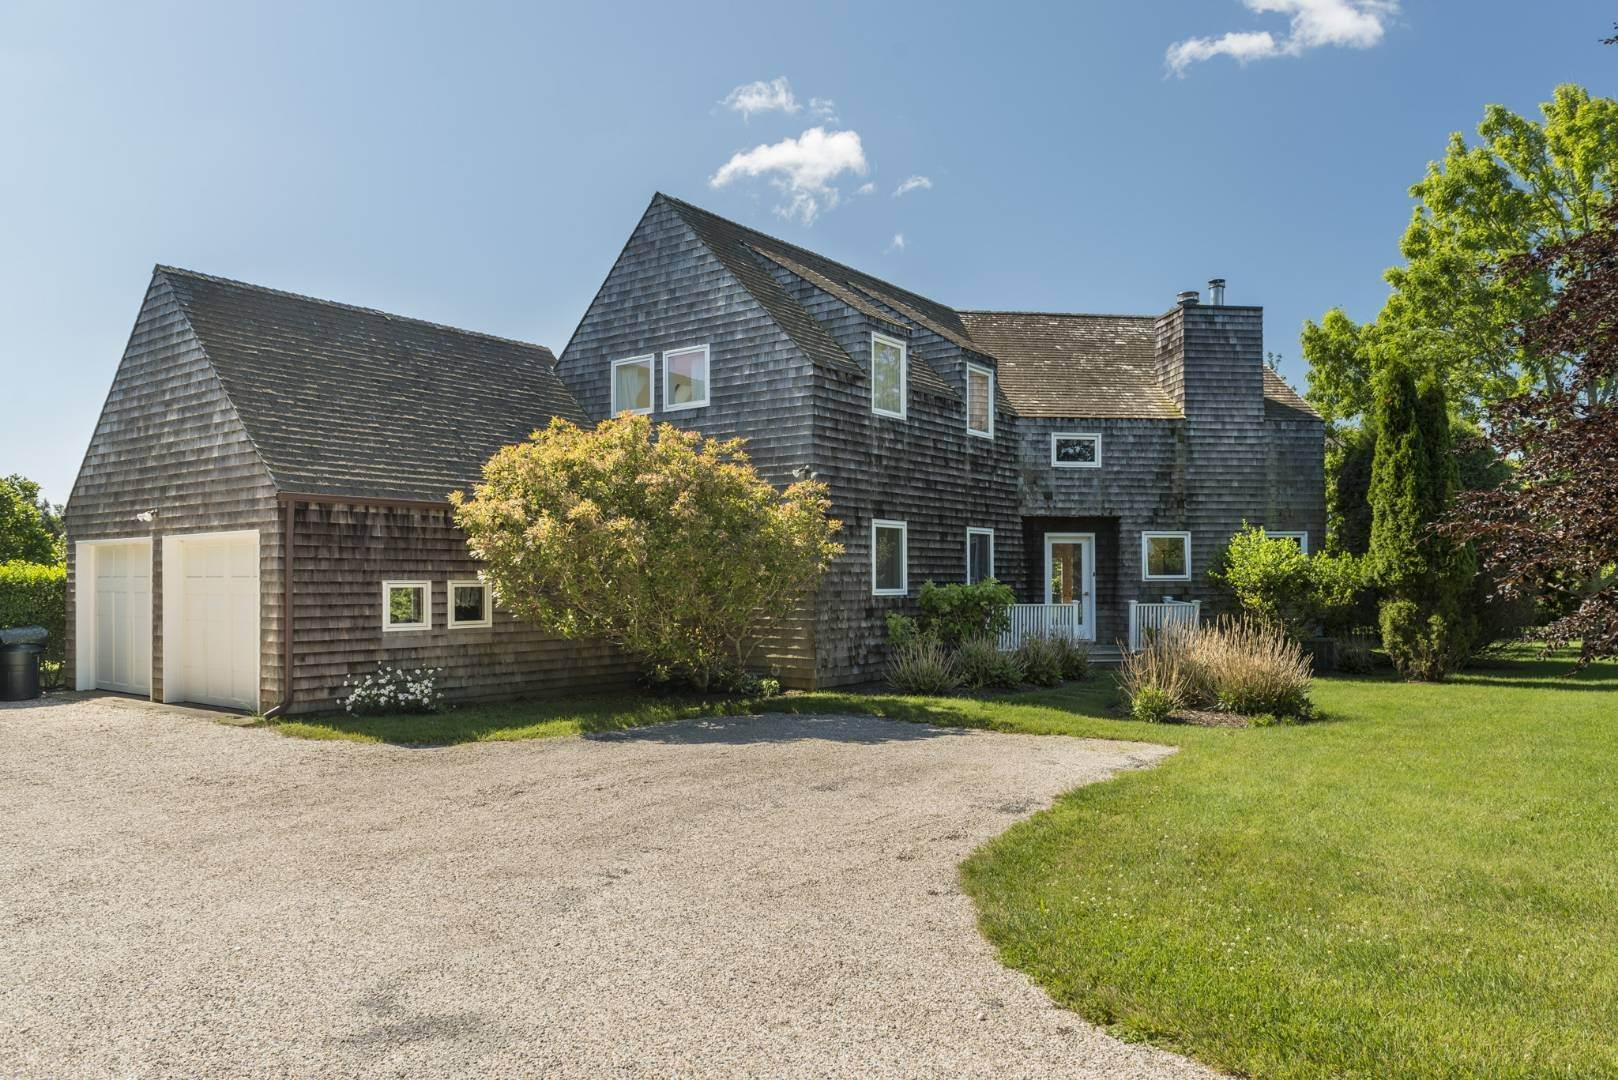 Single Family Home at Bridgehampton South Of The Highway Rental Bridgehampton, NY 11932